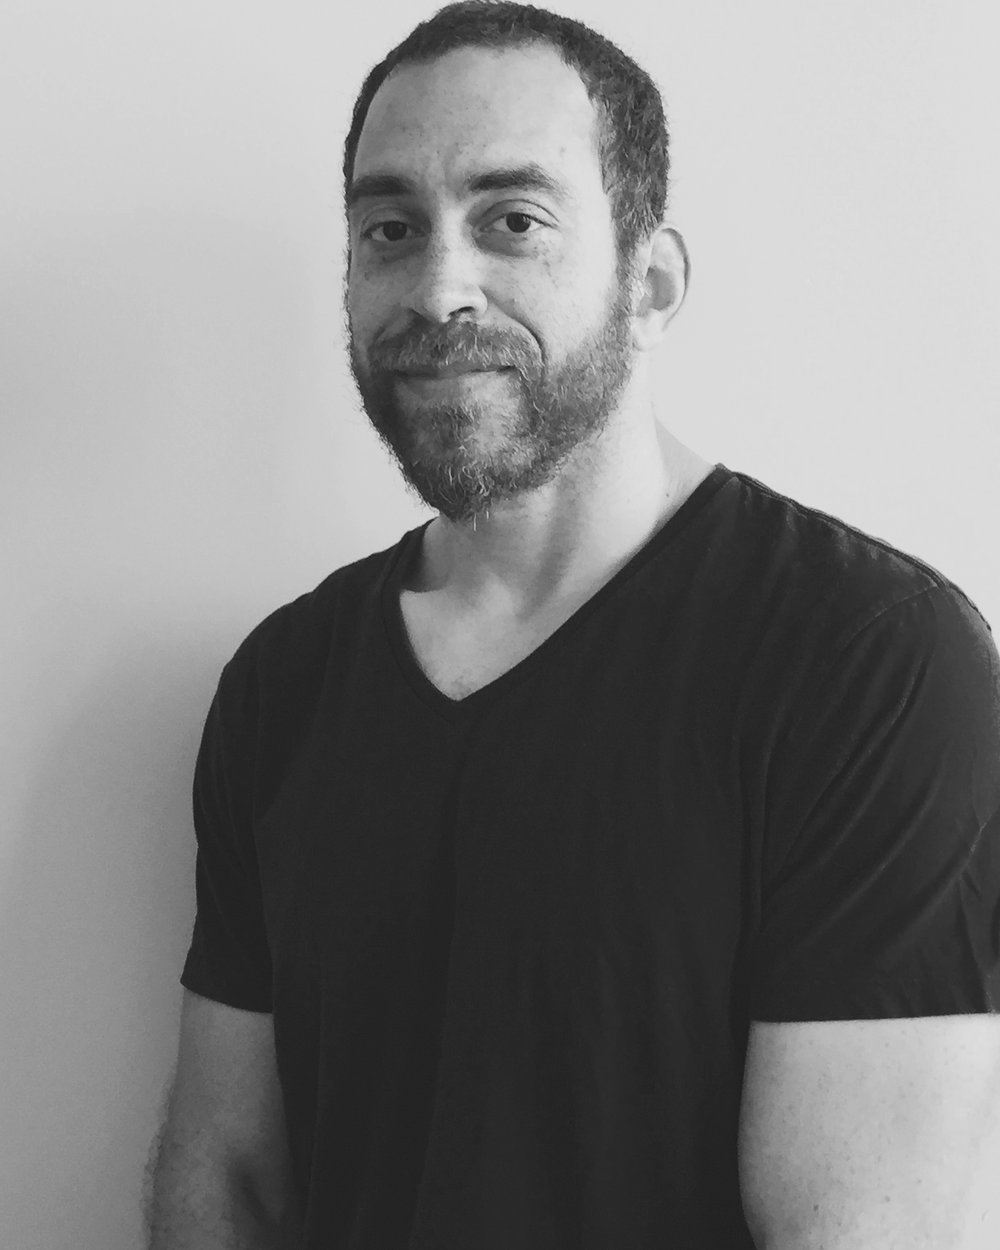 NAME  : Damian McCleod  LOCATION  : Brooklyn, New York  SERVICES  :∆ Acupuncture, ∆ Cupping ∆ Tuina ∆ Guasha